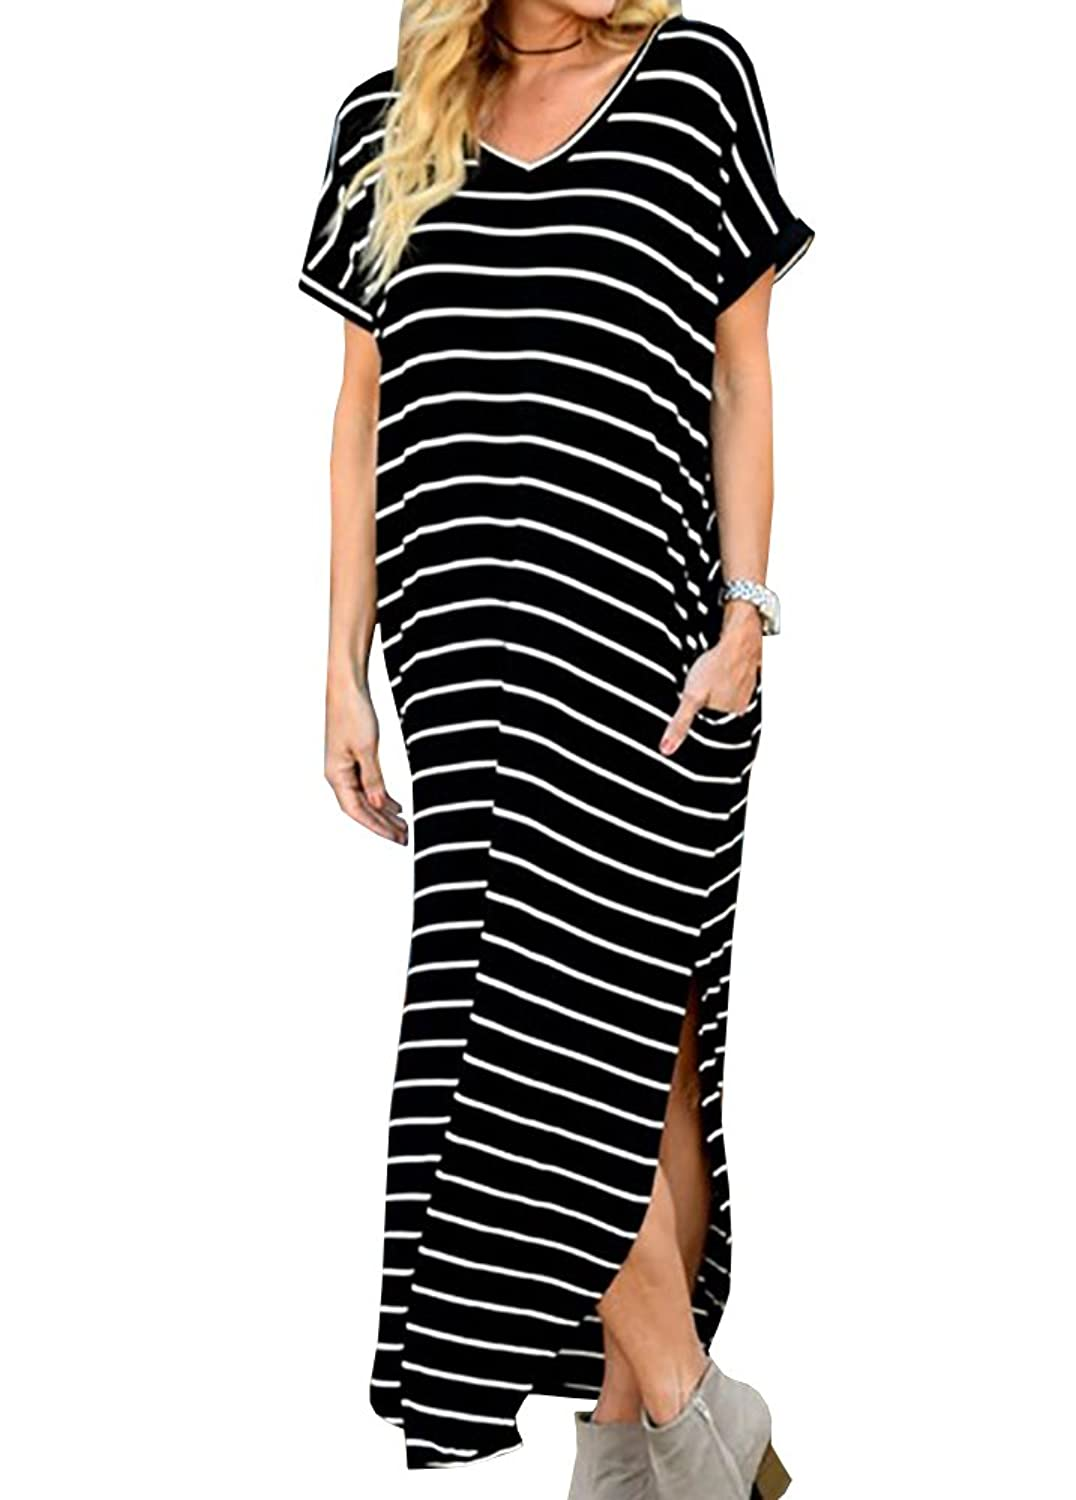 Dresses New Ladies Solid Color Button Lapel Drawstring Straps Long Sleeve Cotton And Linen Mini Dress Comfortable Summer Dresses Casual